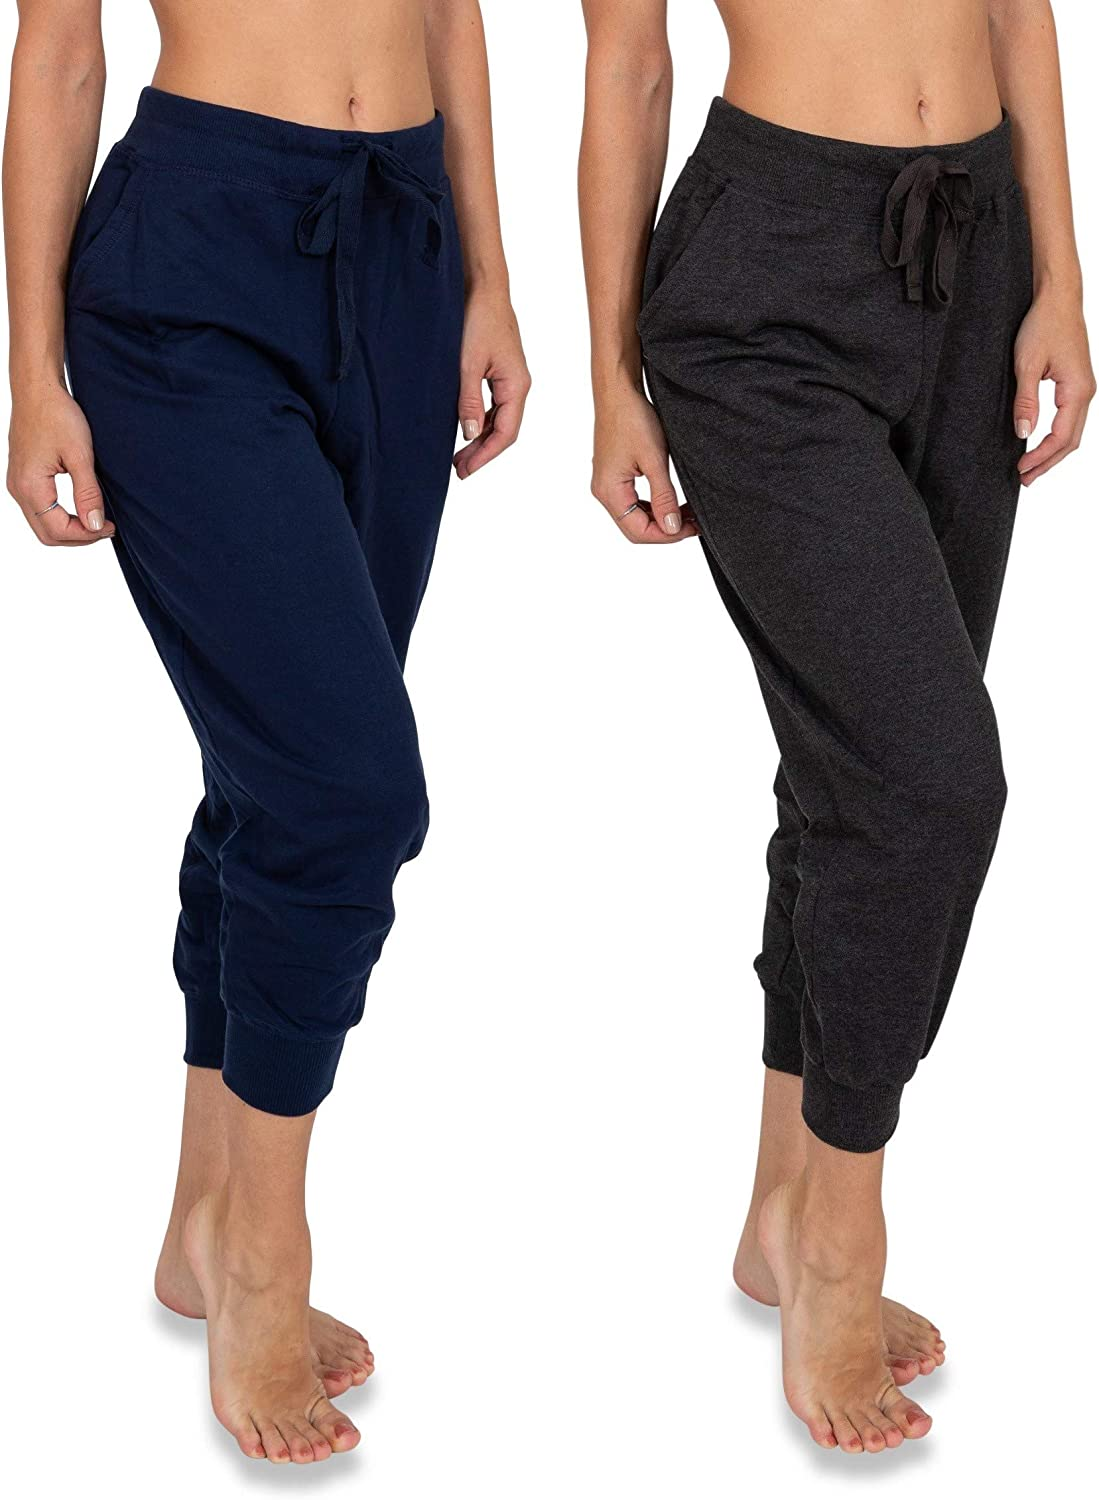 Sexy Basics Women's 2 Pack Soft French Terry Fleece Casual/Active Comfy Capri Jogger Lounge & Sweatpants